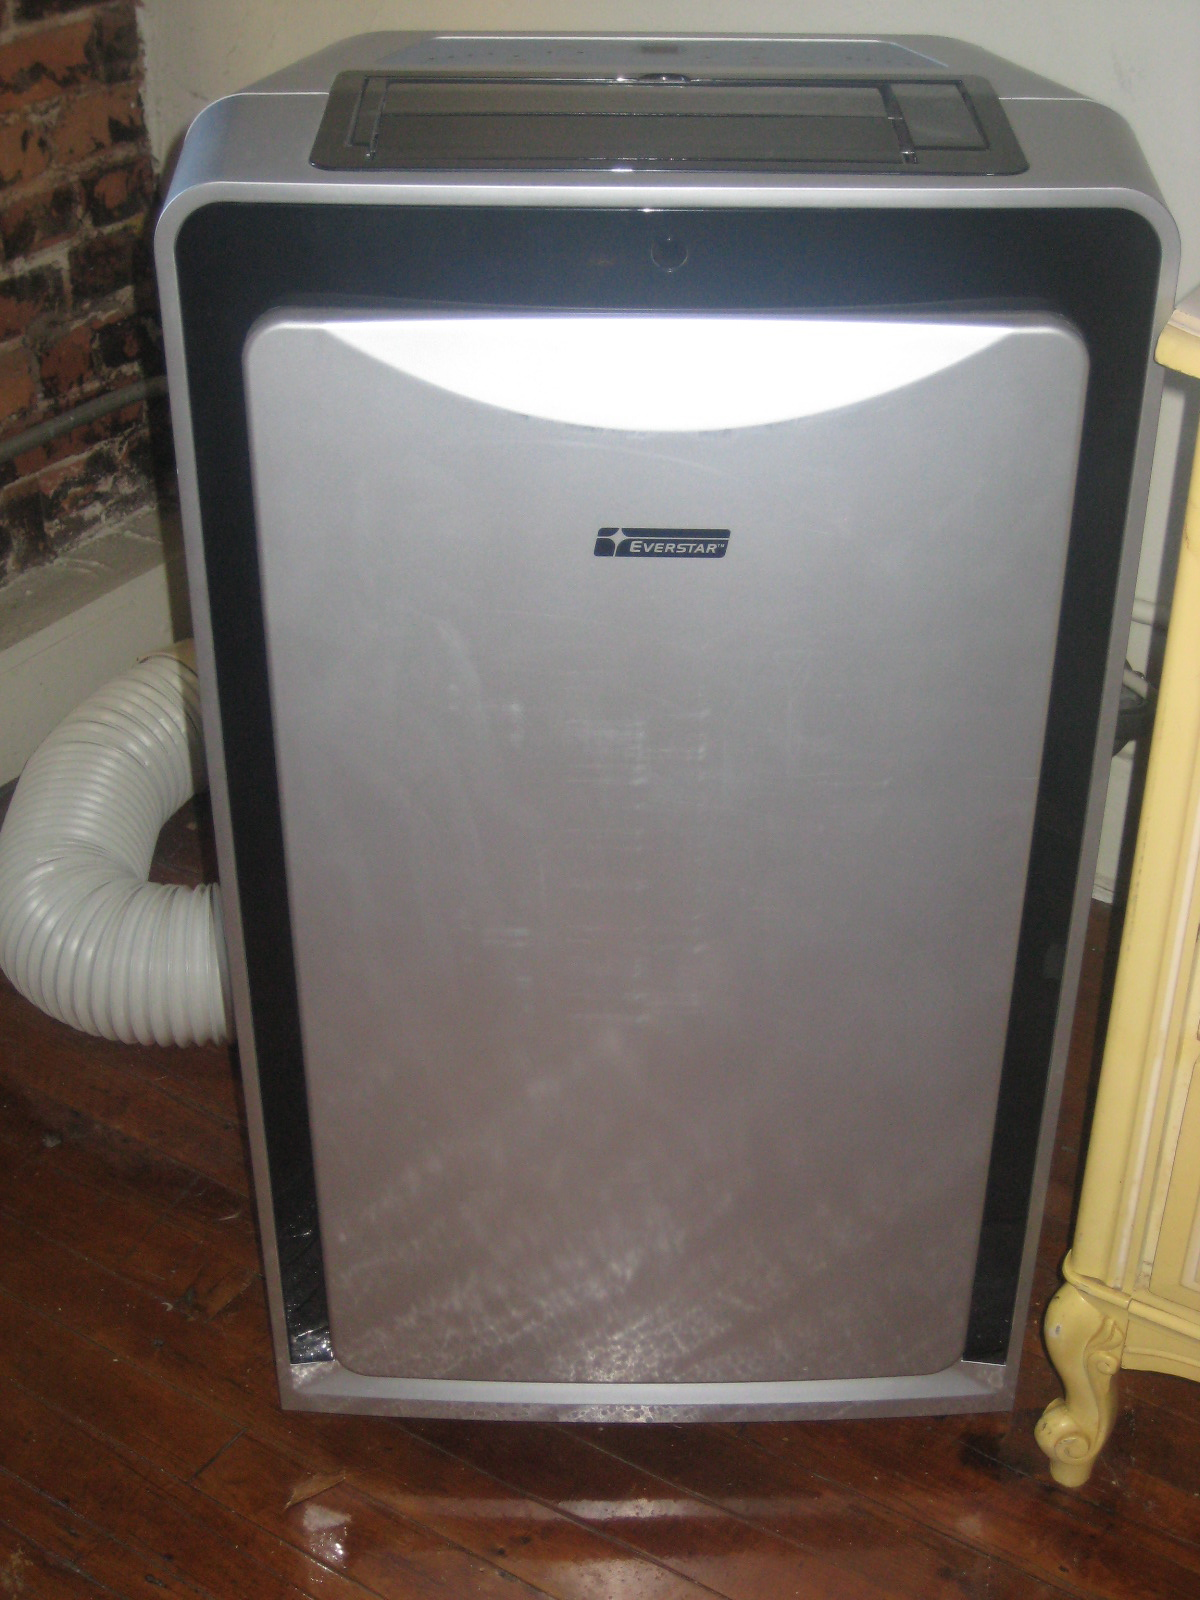 Carla S Garage Sale Everstar Portable A C Unit 10 000 Btu